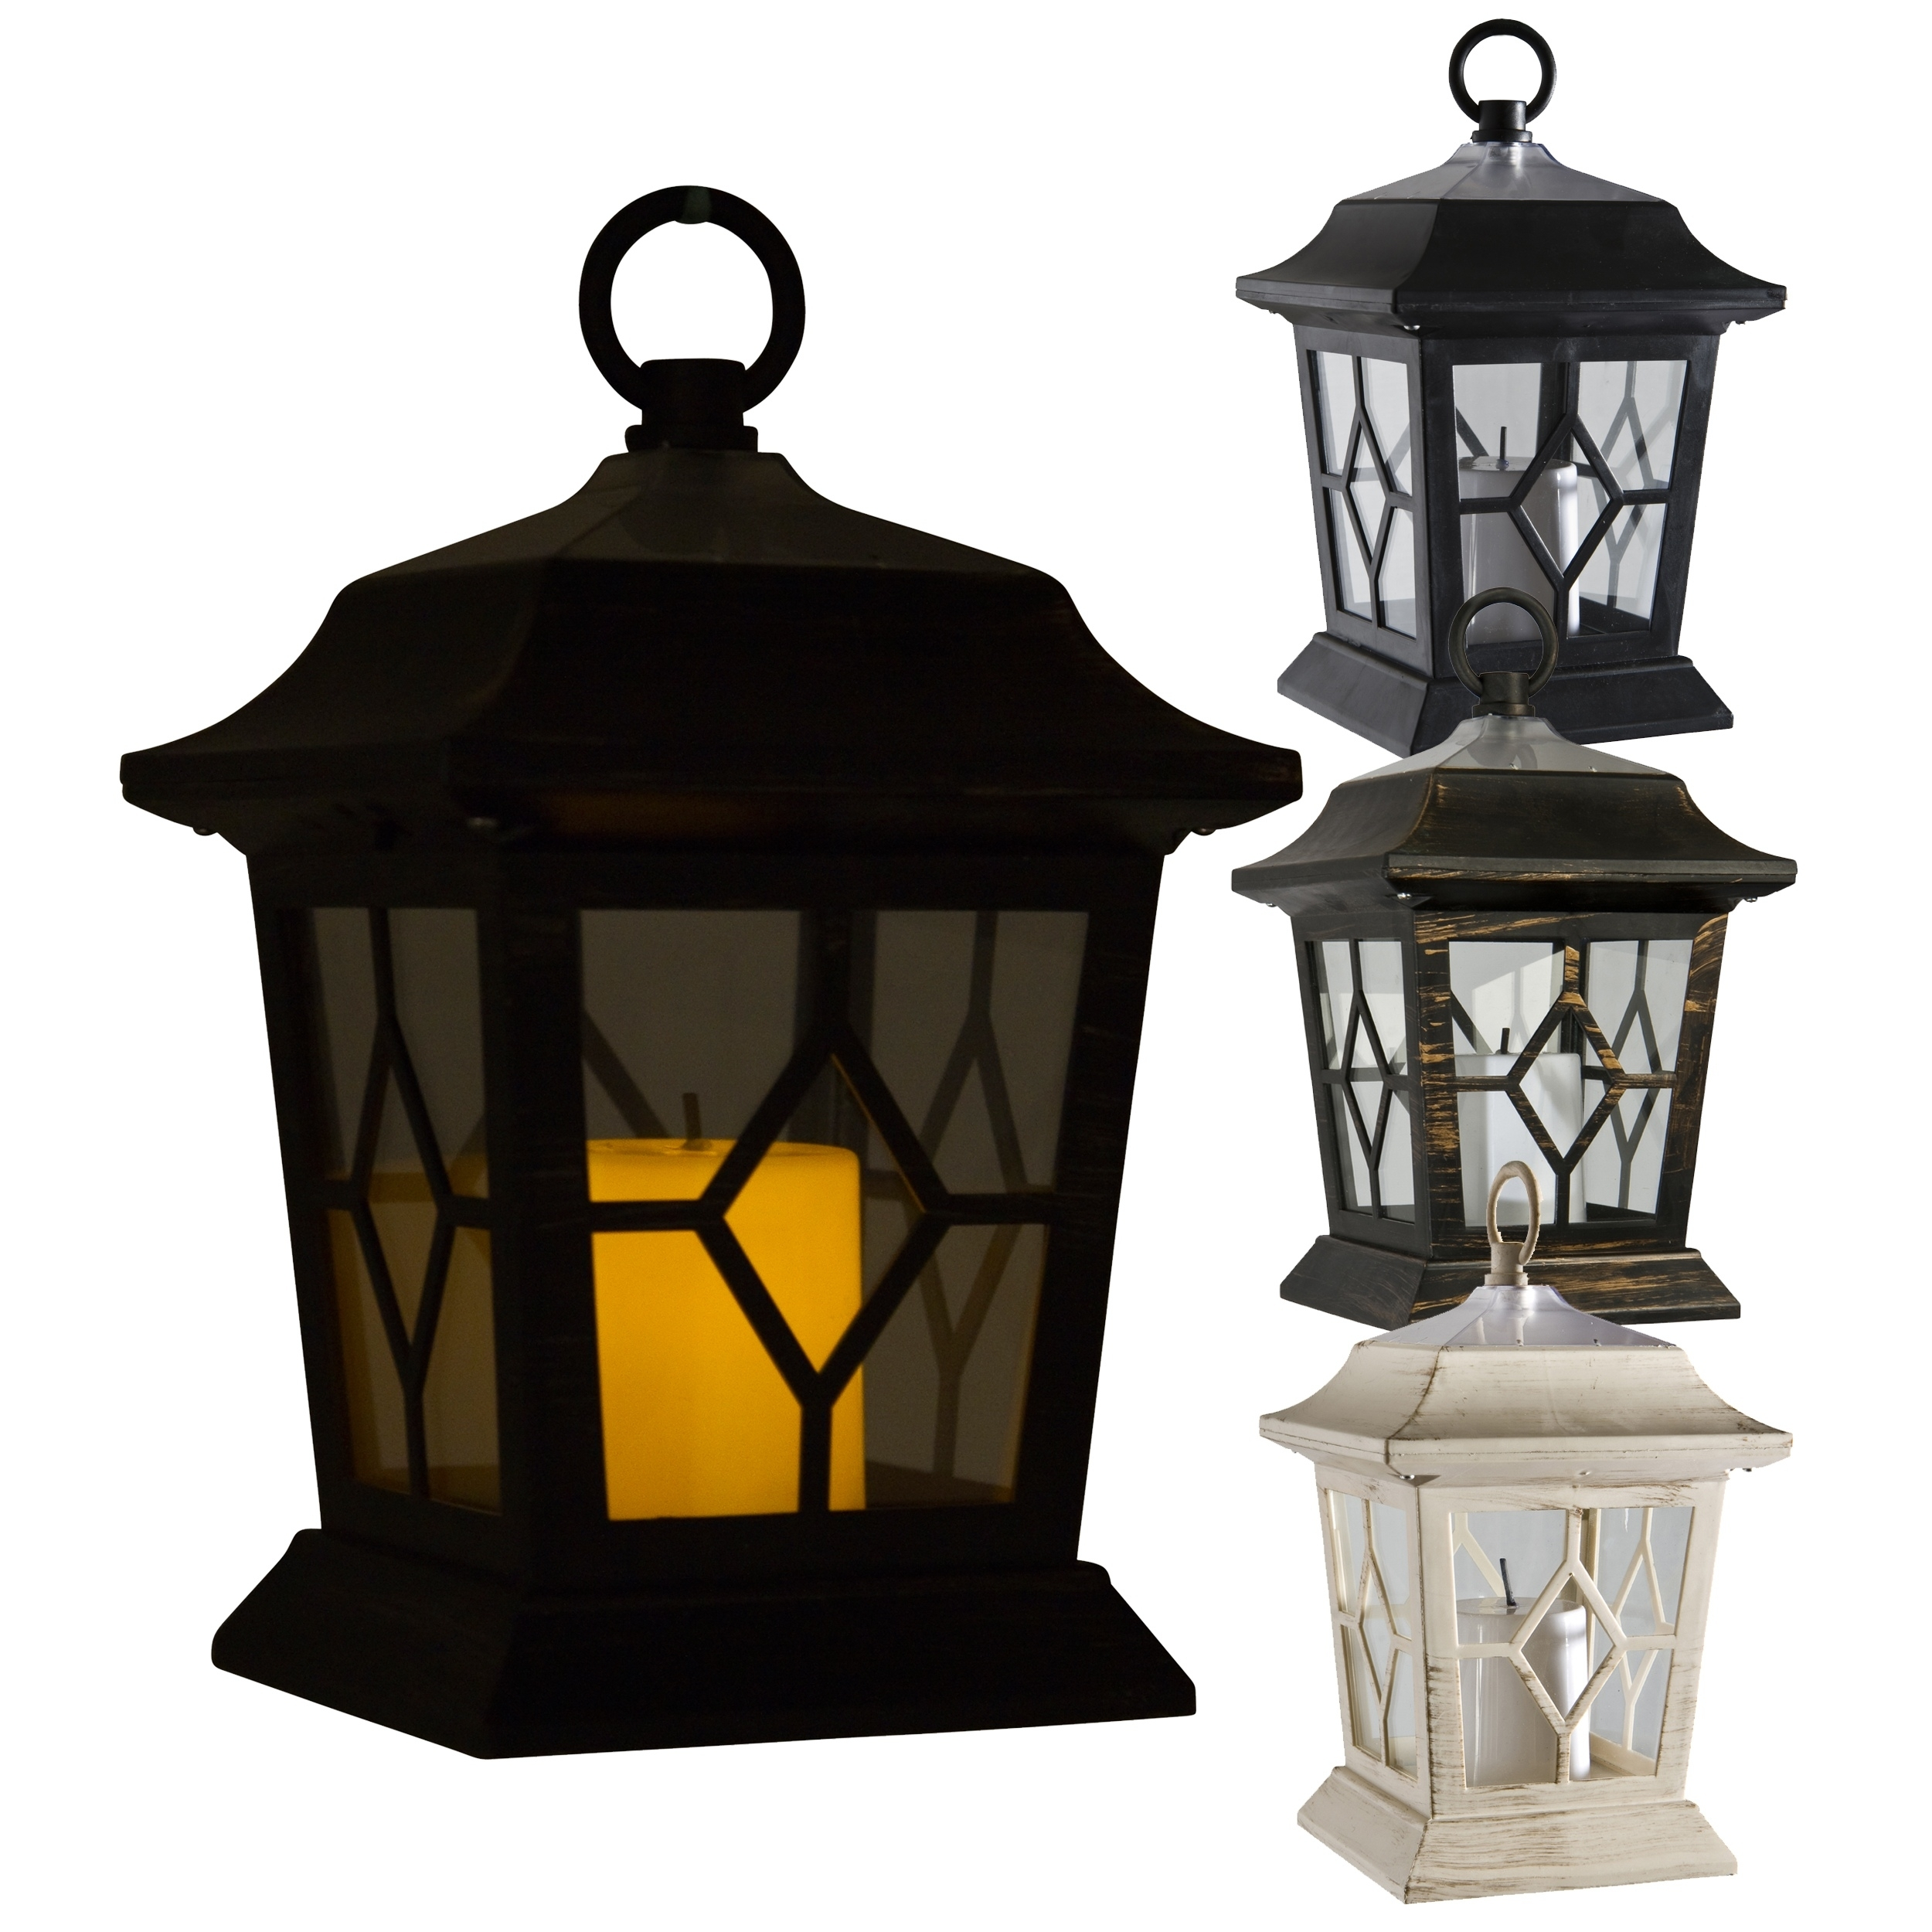 Led Solar Powered Victorian Candle Lantern Lamp Light Garden Mood Pertaining To Outdoor Lanterns With Led Candles (View 20 of 20)